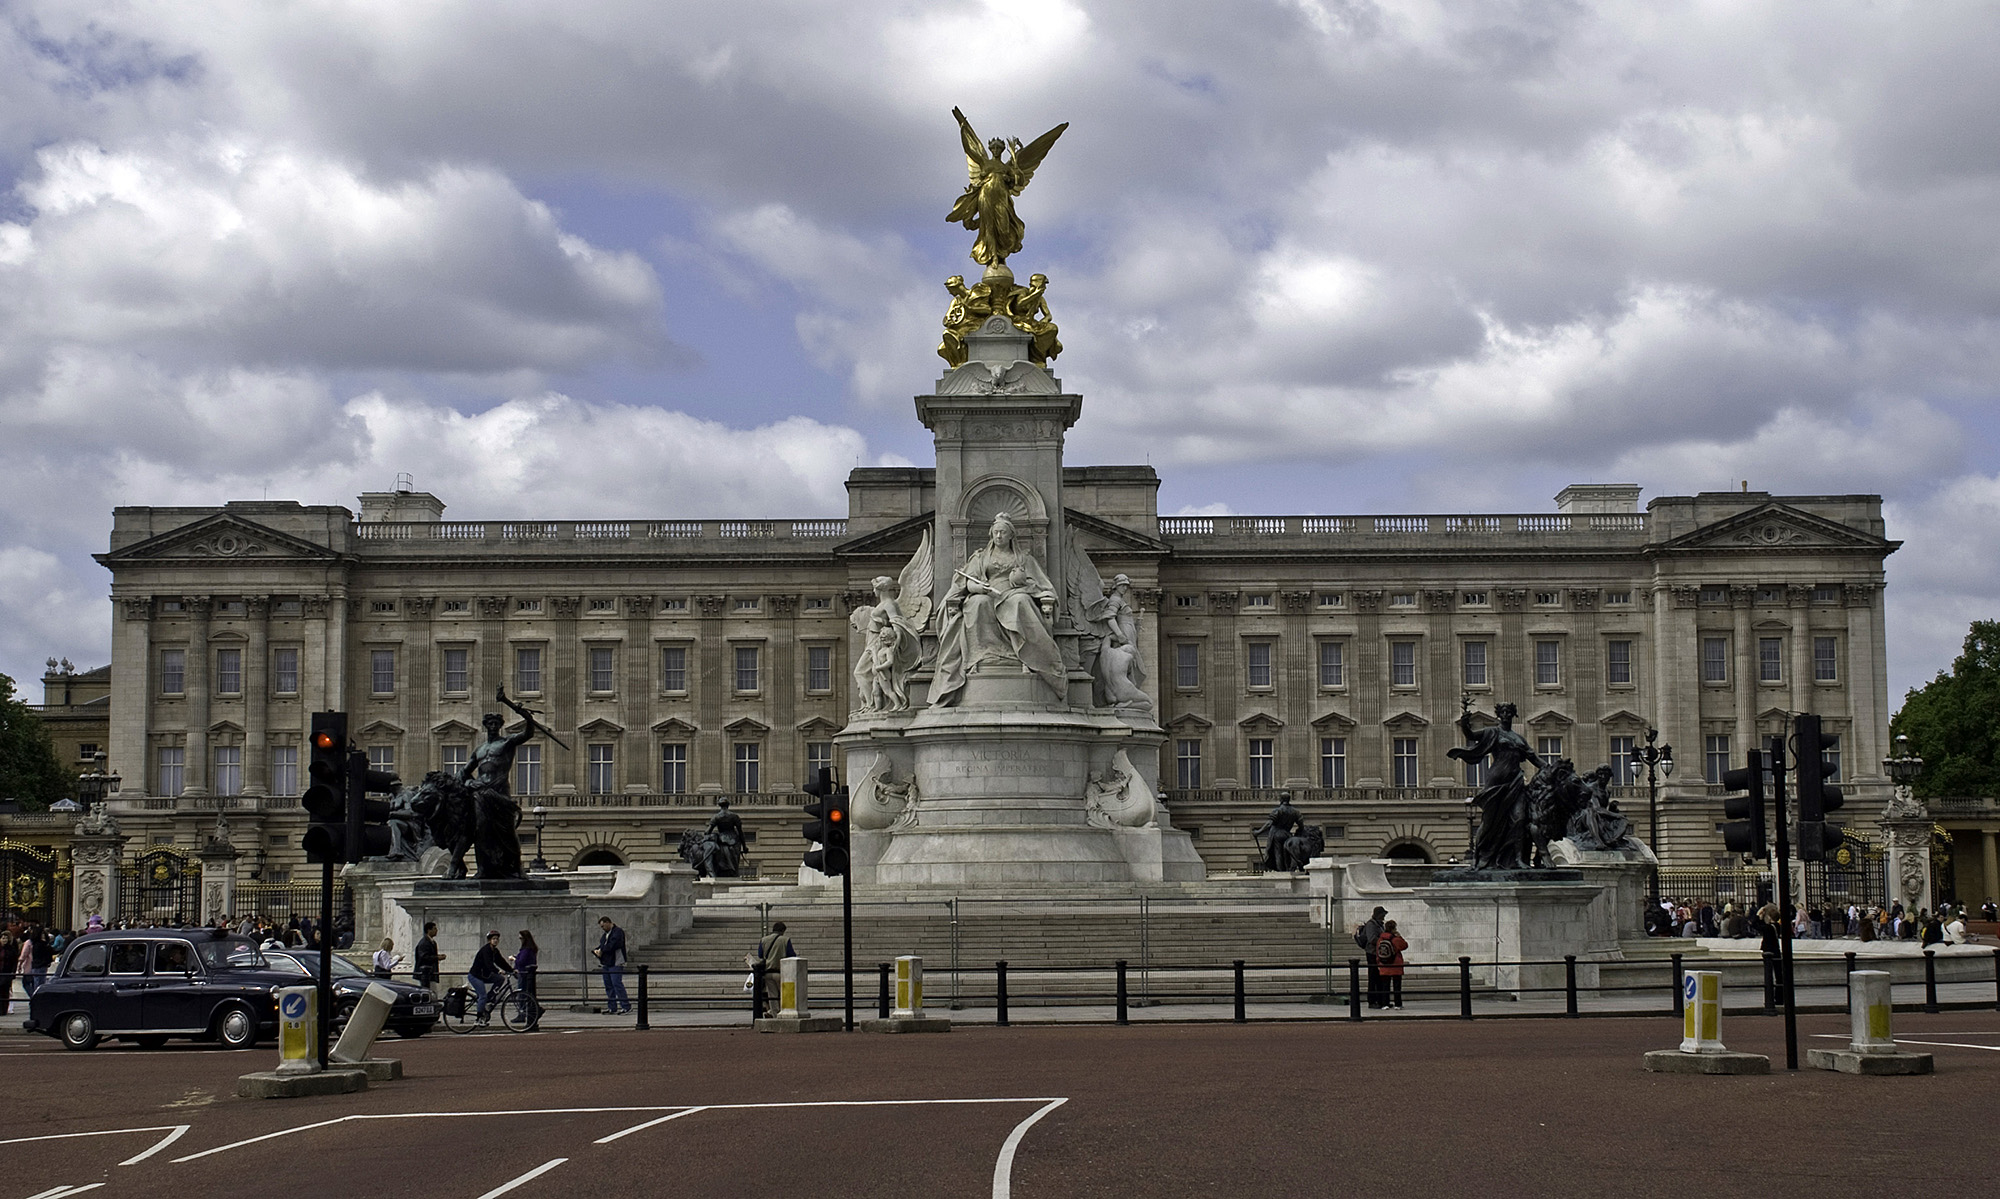 Buckingham Palace from the Mall